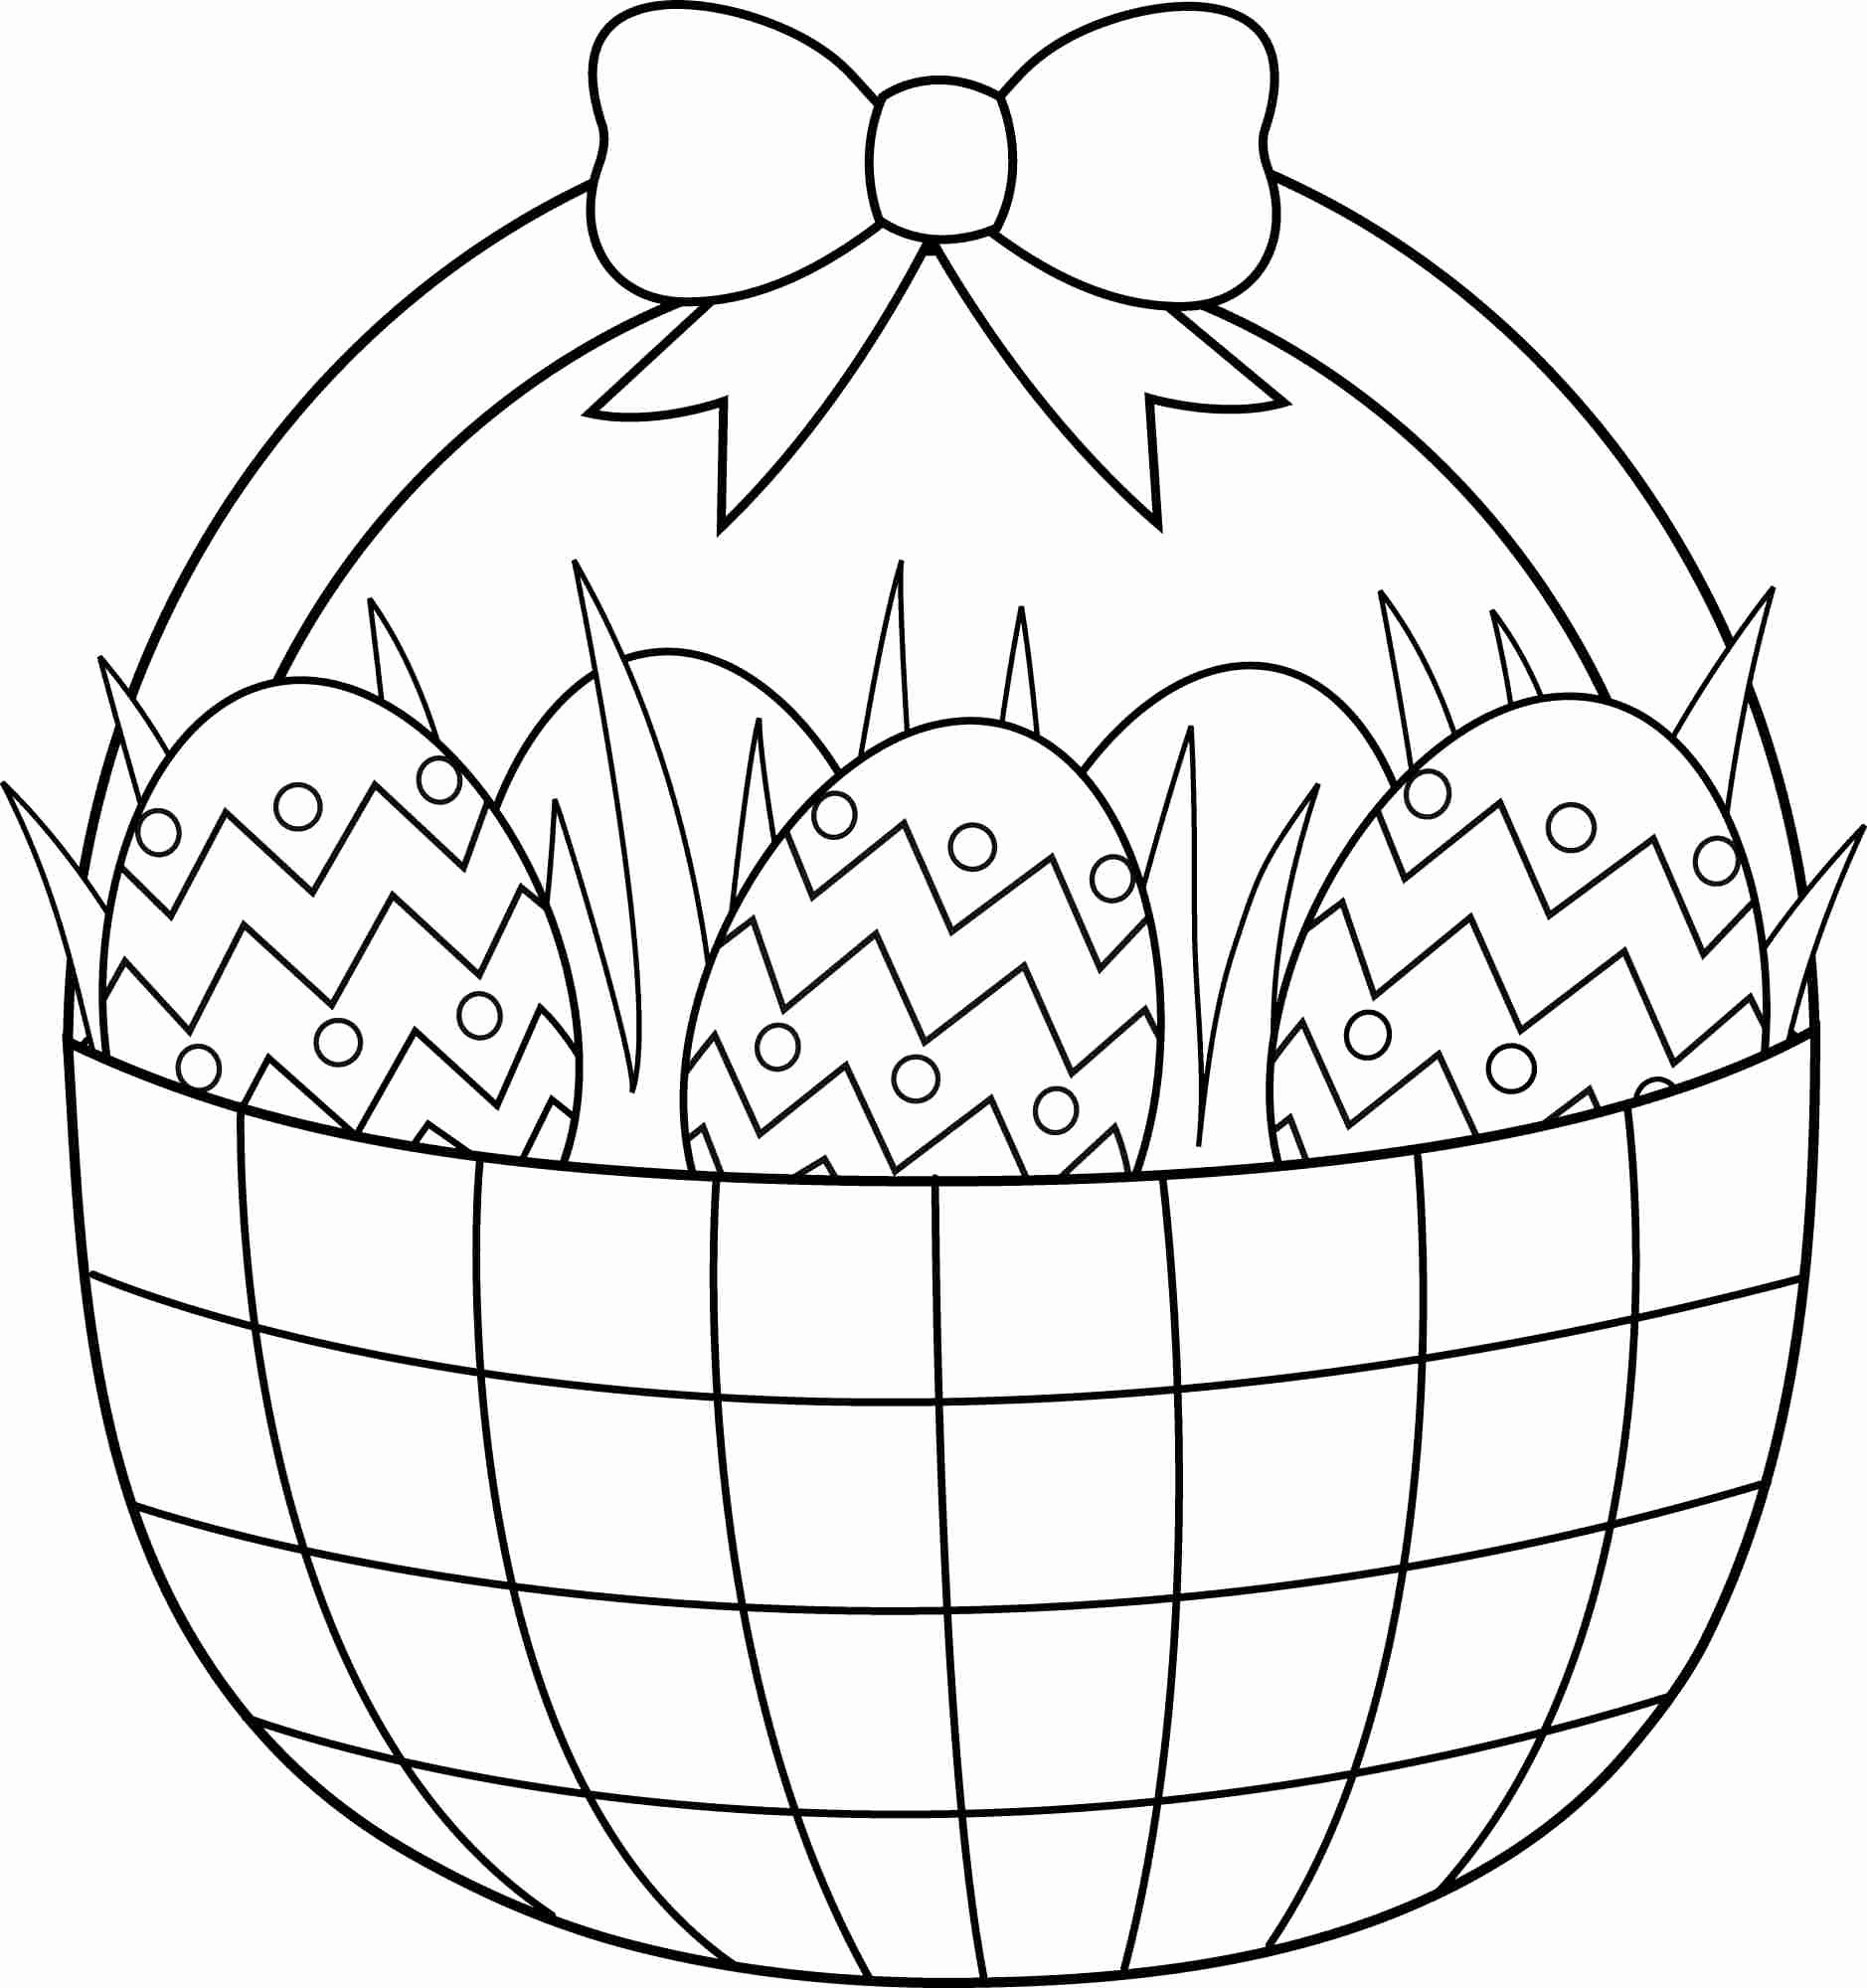 Coloring Book World: 69 Extraordinary Easter Coloring Pages Picture - Free Easter Color Pages Printable